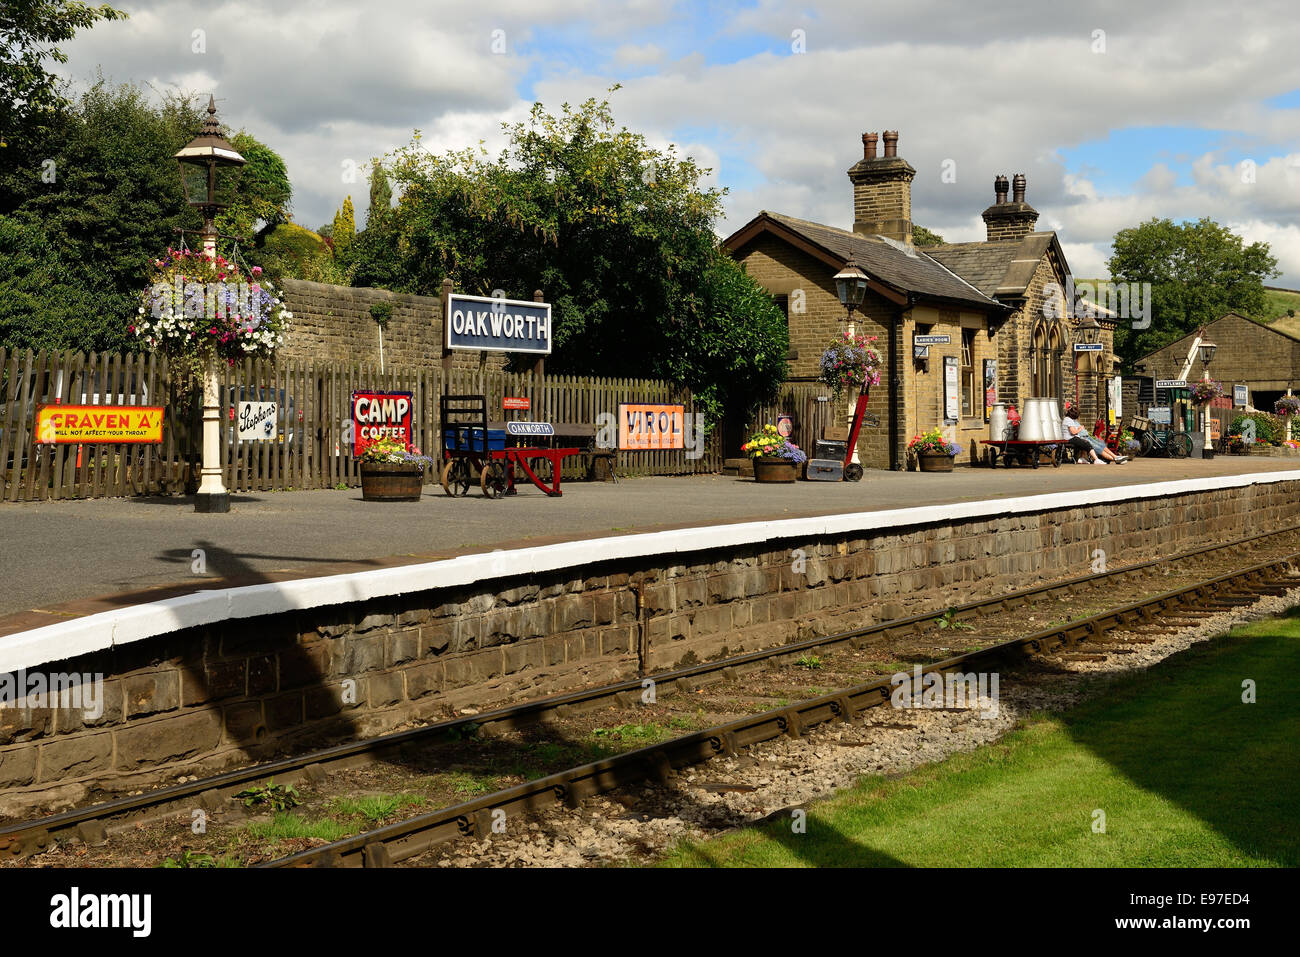 Oakworth station on the Keighley & Worth Valley Railway. It featured prominently in the 1970 film 'The Railway - Stock Image